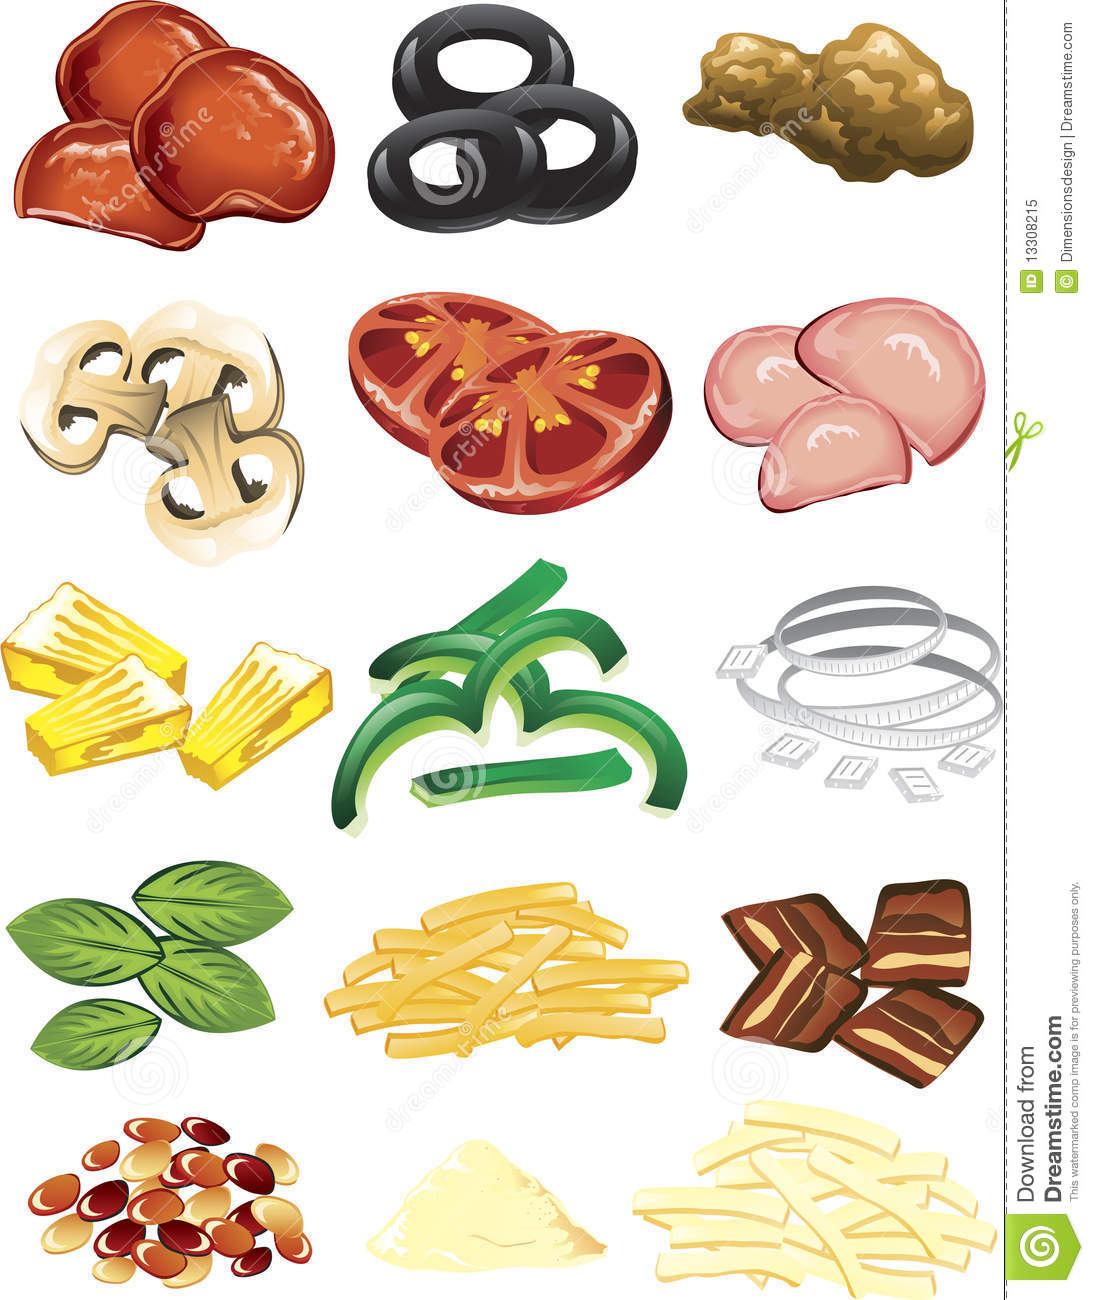 Pizza Toppings Royalty Free Stock Photo